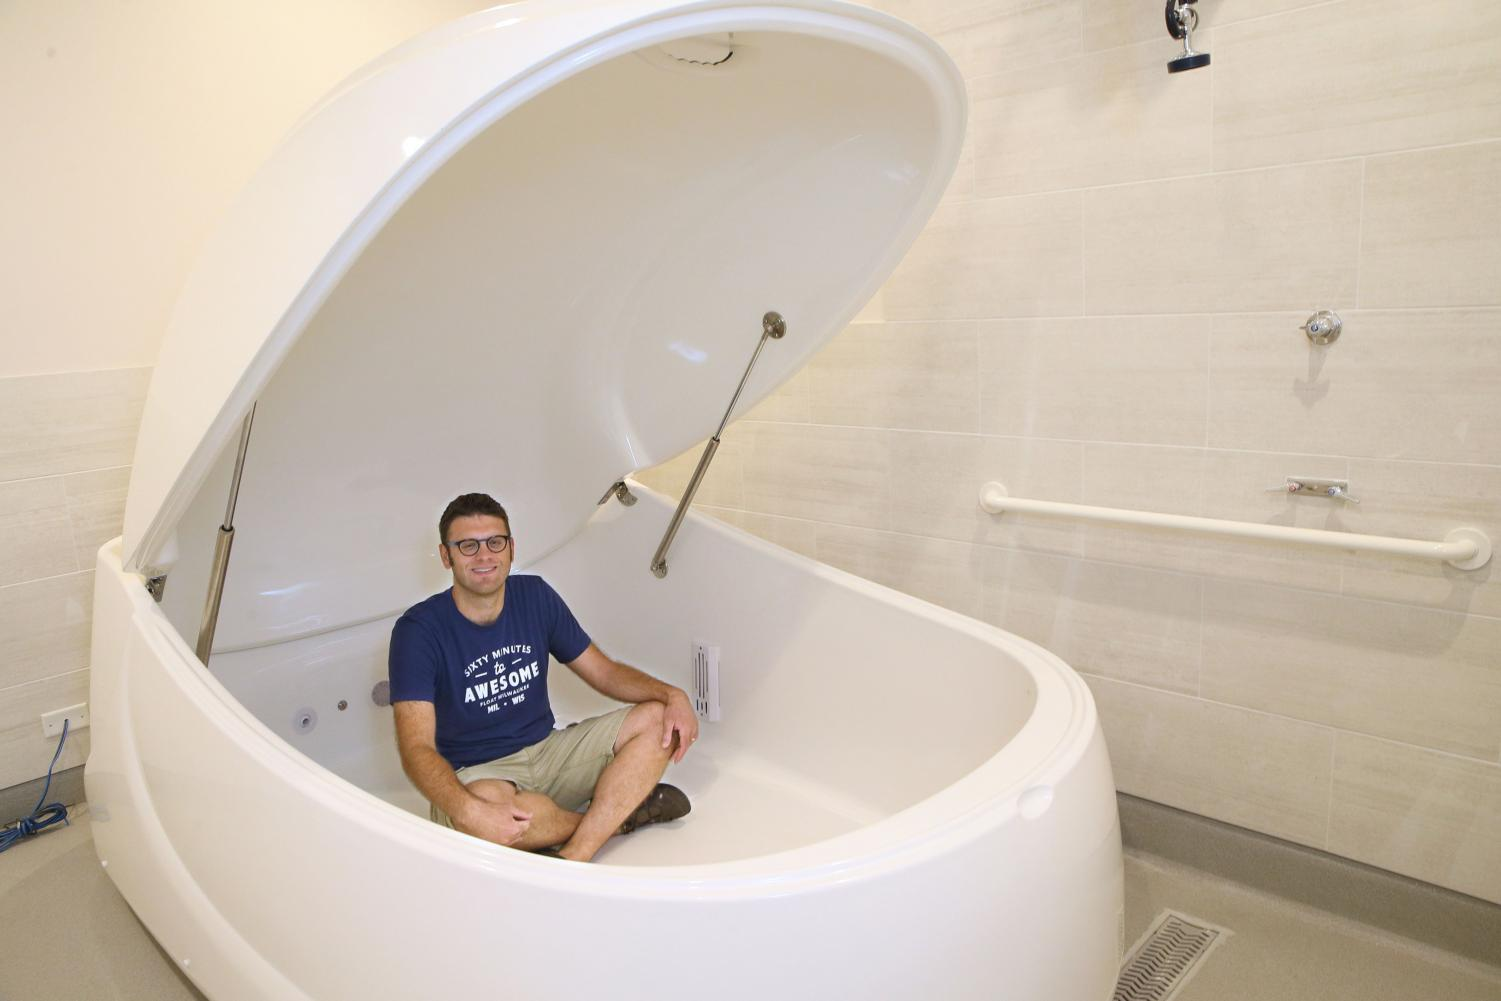 Sensory Deprivation tanks are the latest trend for people who are looking to